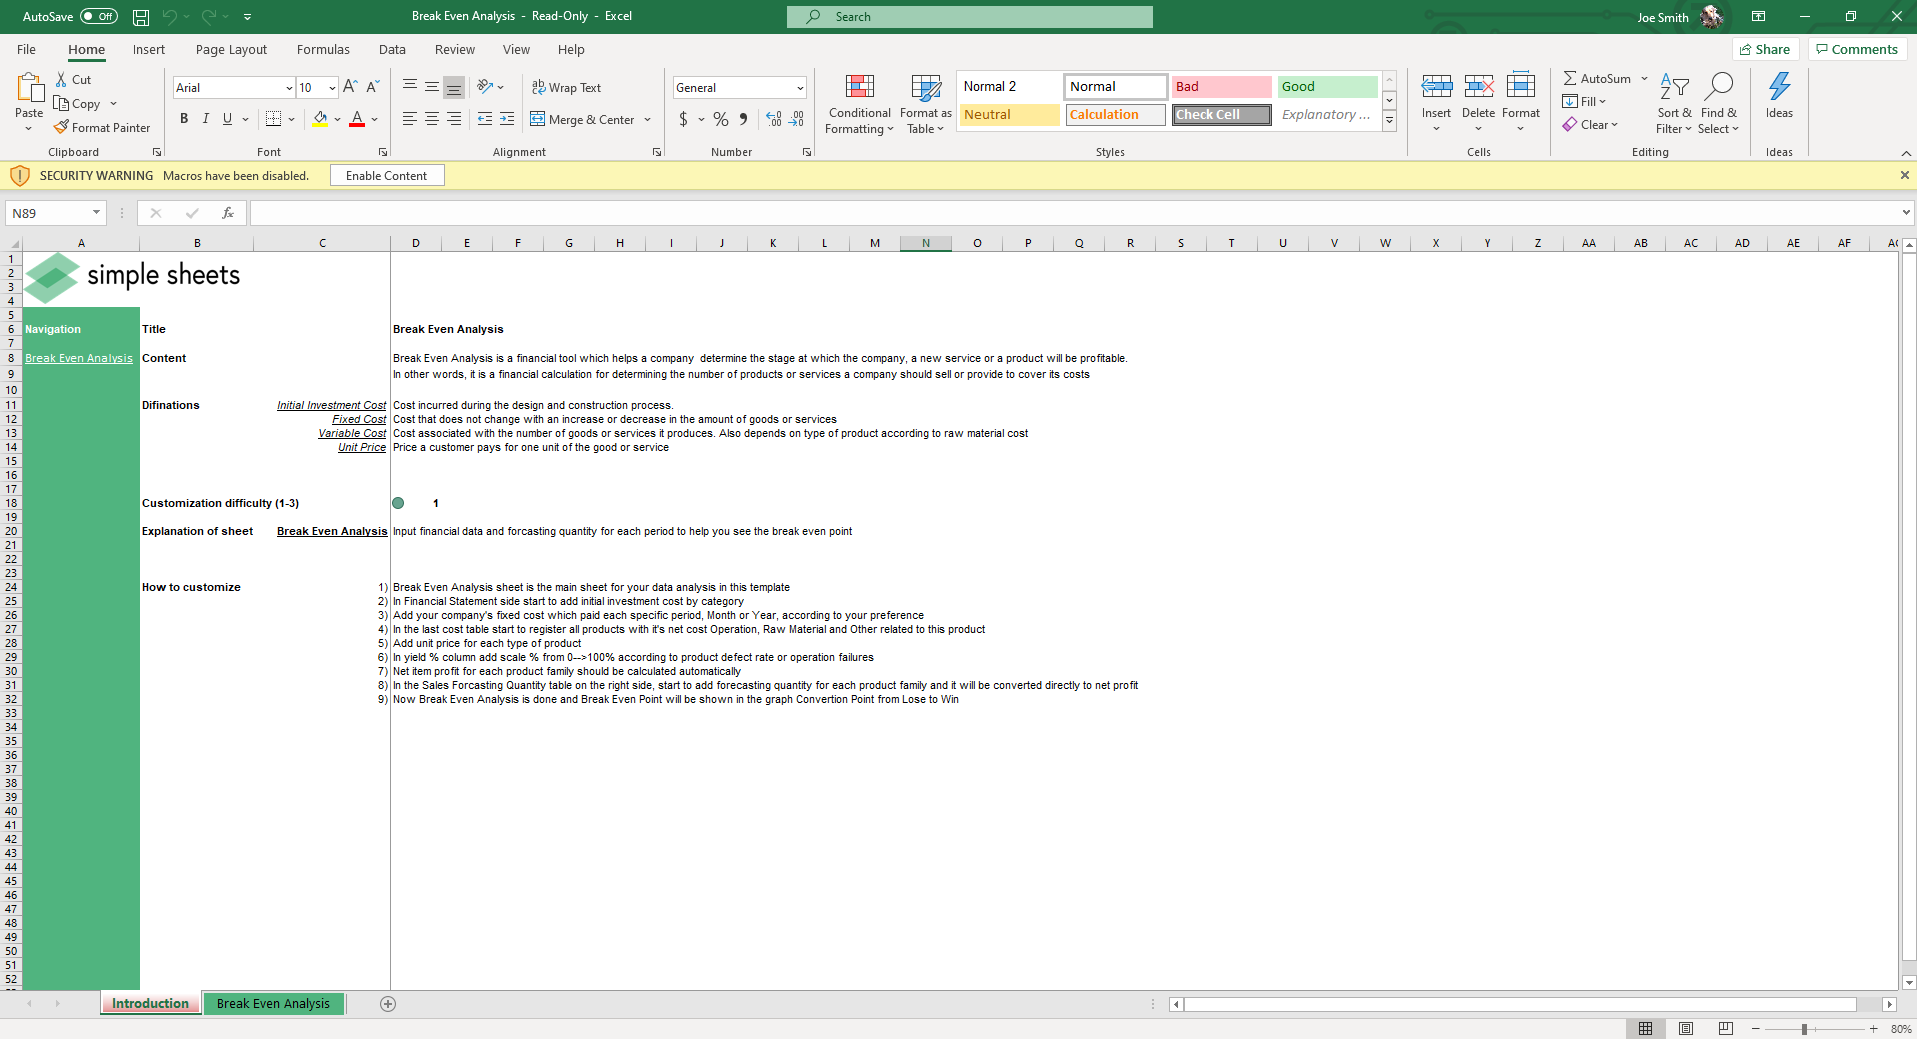 The introduction sheet for our Break Even Analysis spreadsheet to calculate when a venture will break even.